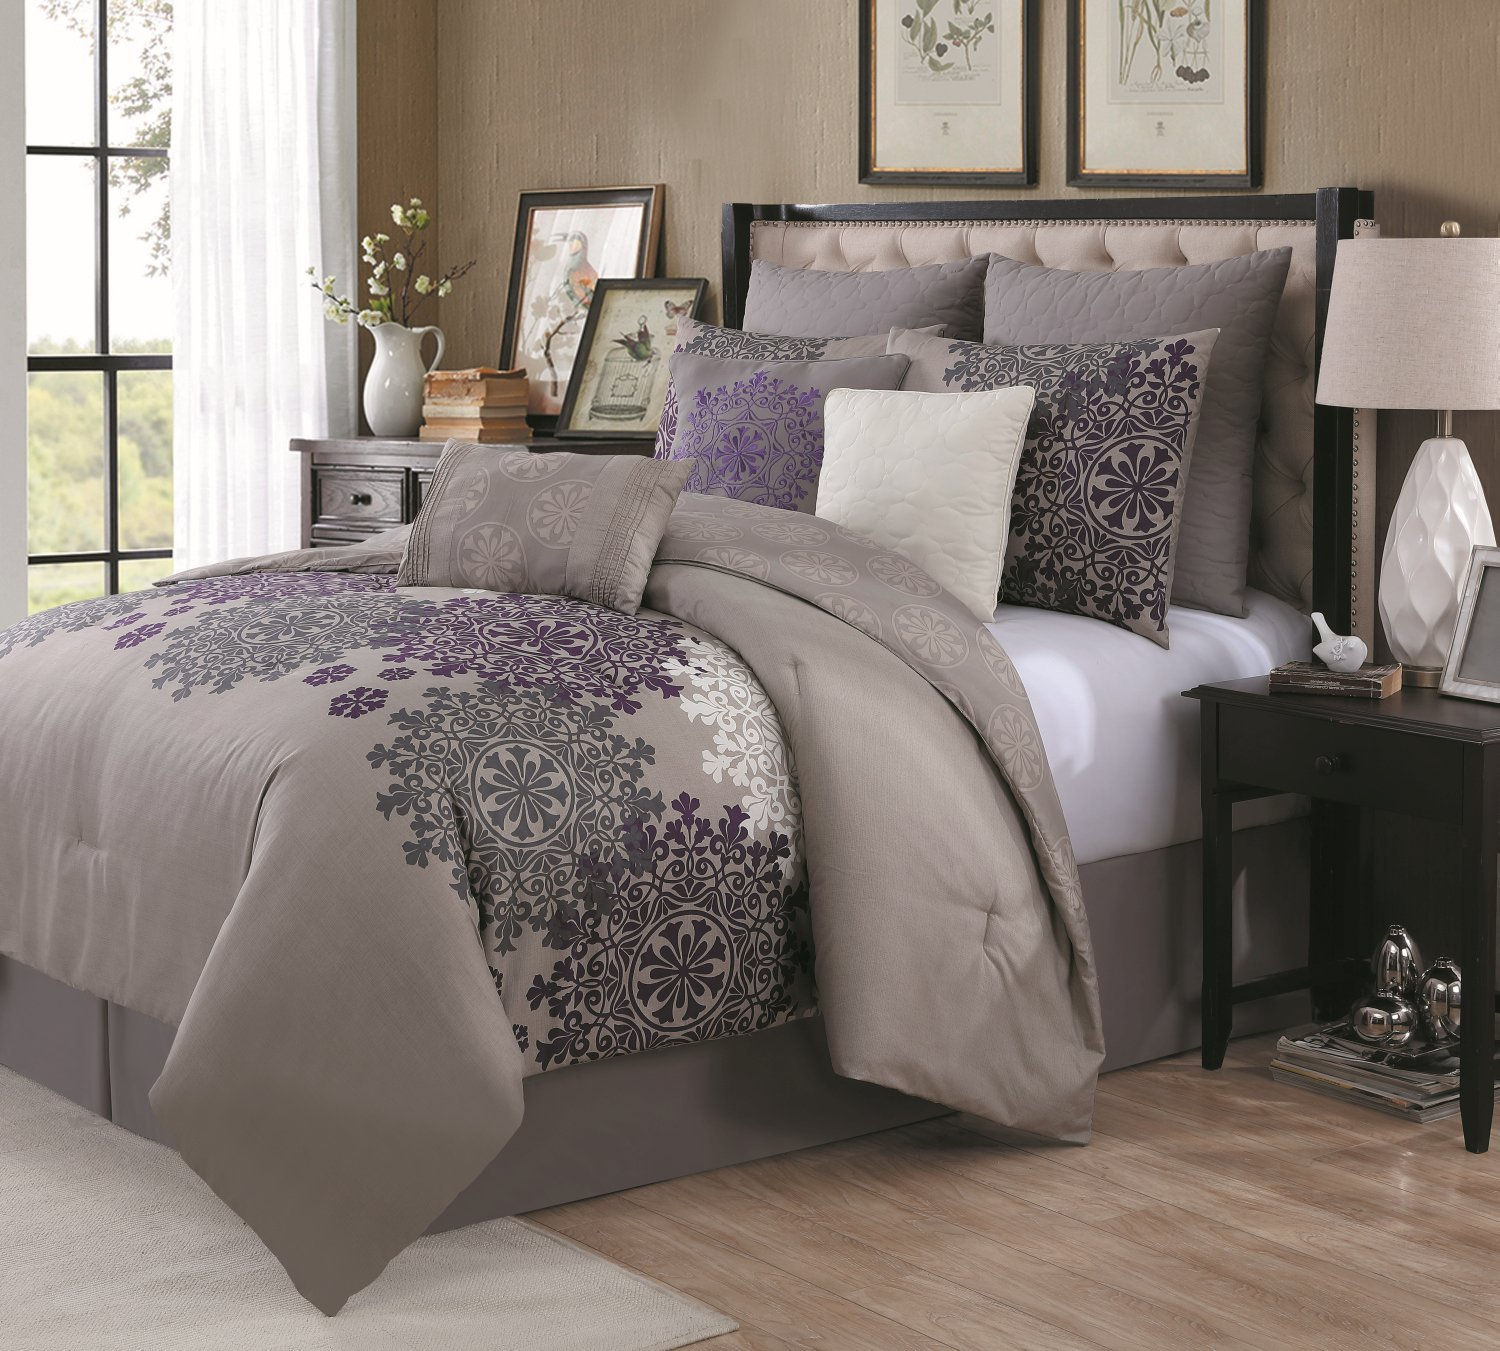 staging blues set gallery full keith for htm bryan neutral love bag bed king grays ideas in gender bedding comforter piece devon macys decoration and a this bedroom